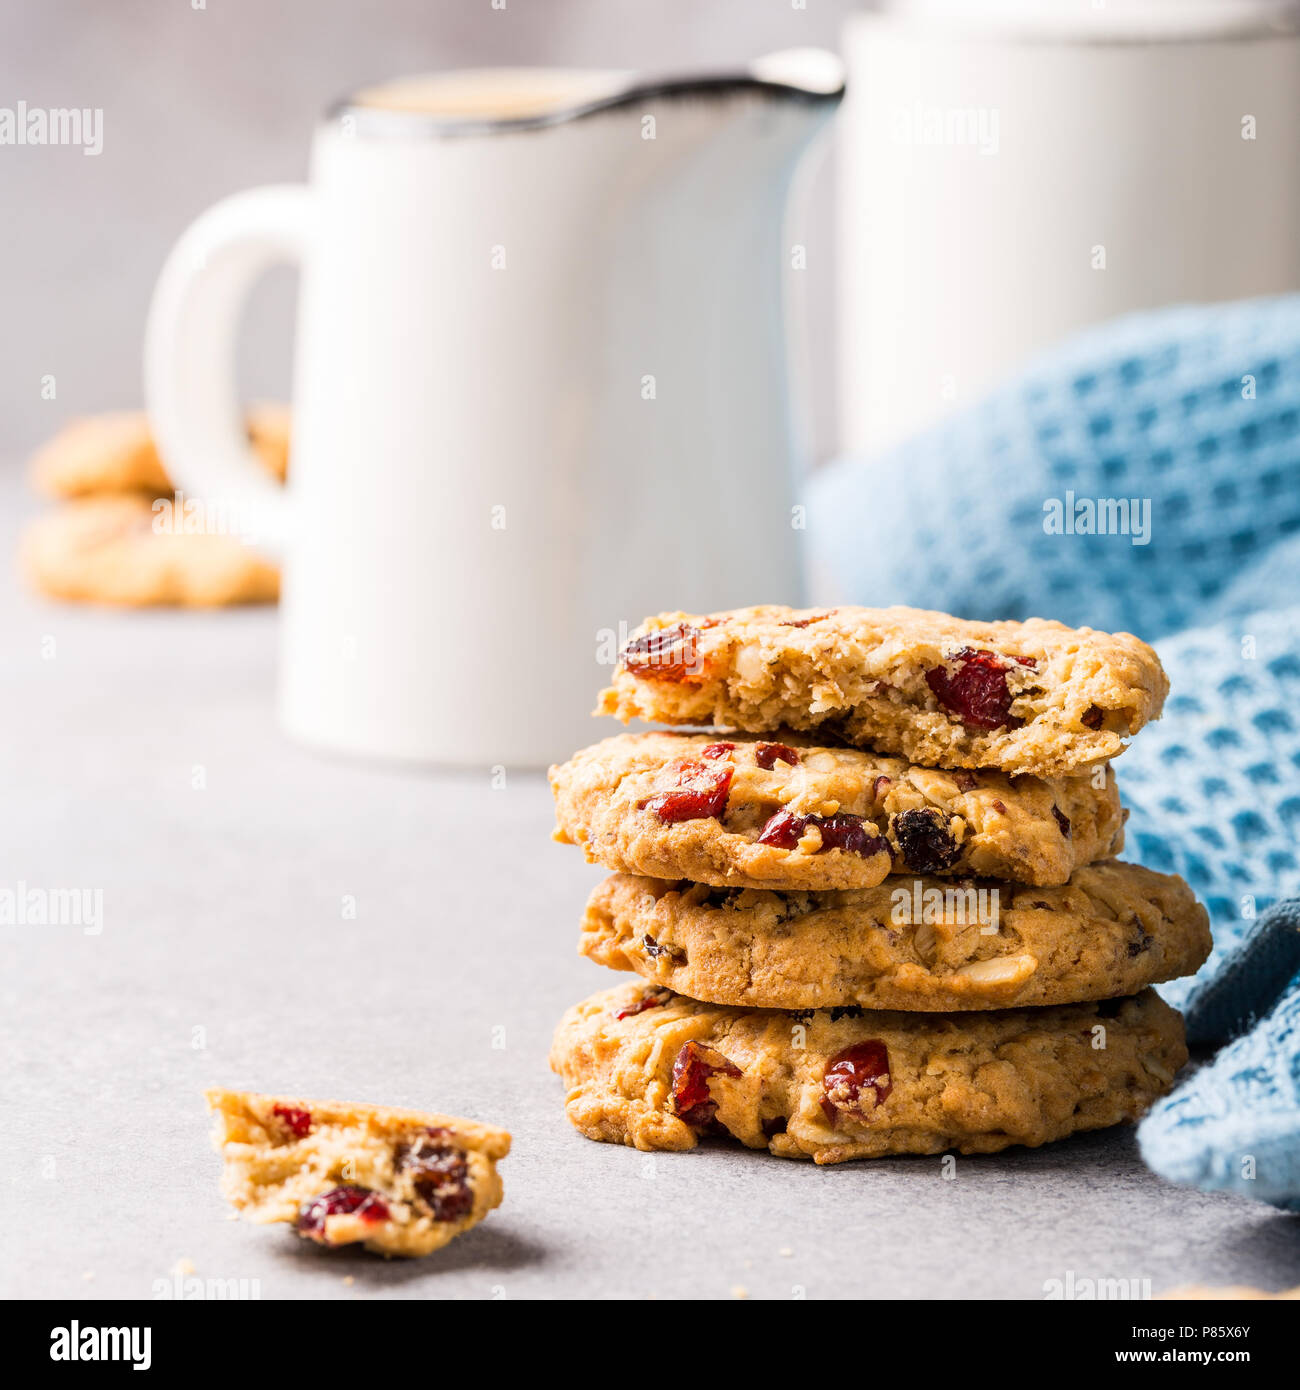 Oat meal cookies with raisins - Stock Image